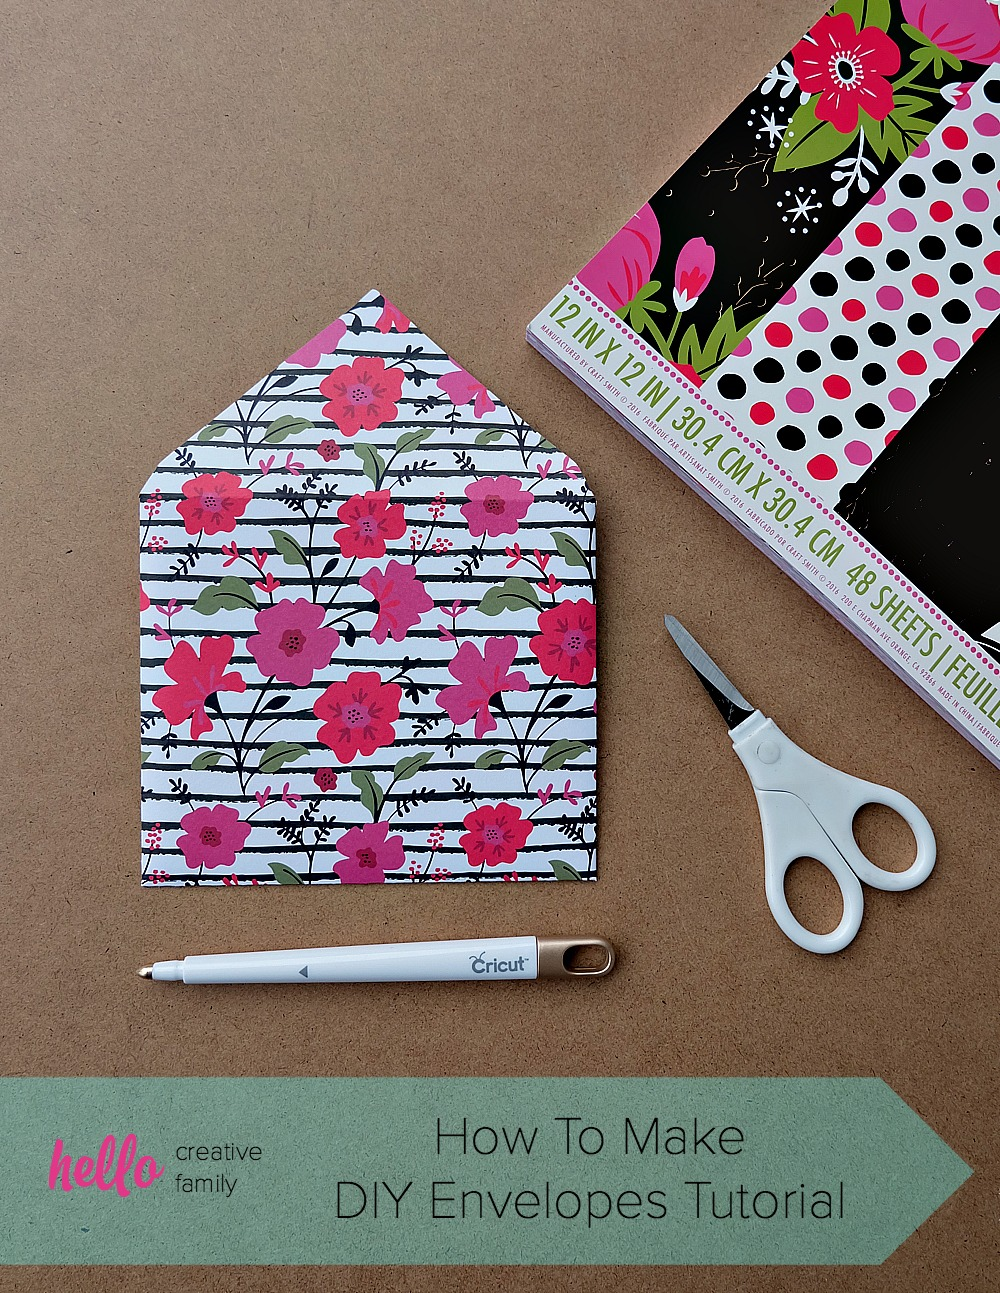 How To Make Diy Envelopes Tutorial Hello Creative Family